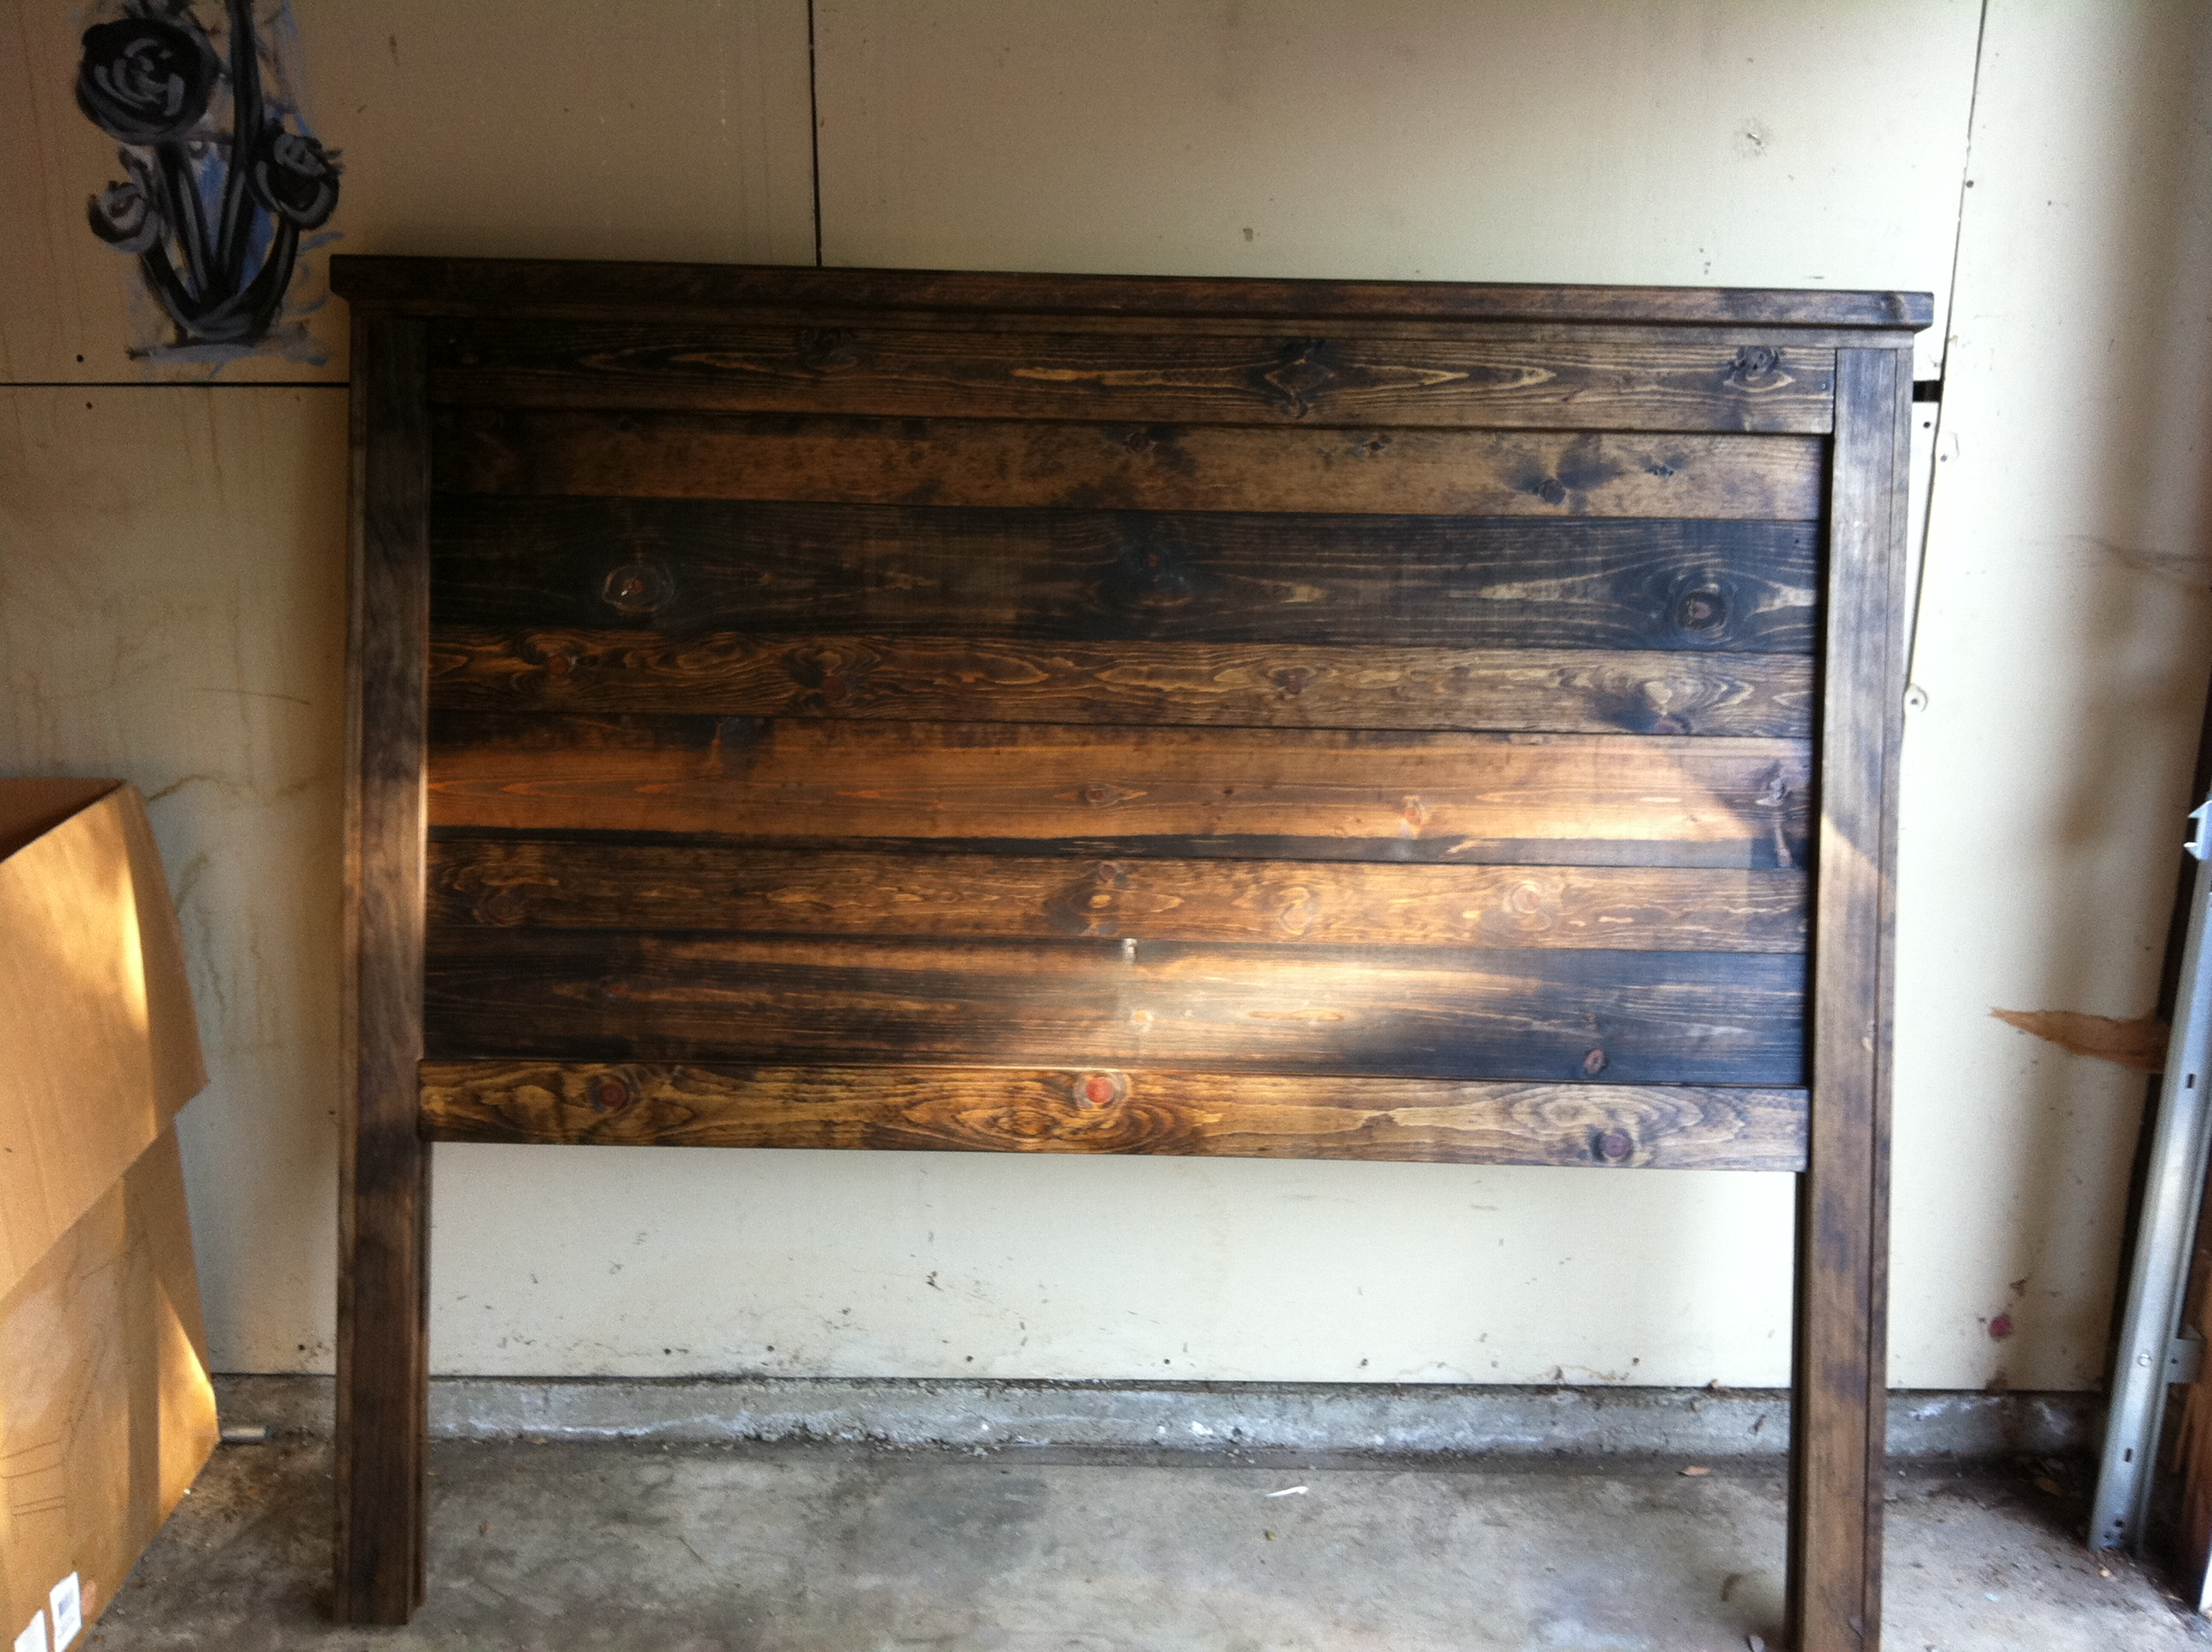 Ana white reclaimed queen wood bed diy projects for Diy queen wood headboard